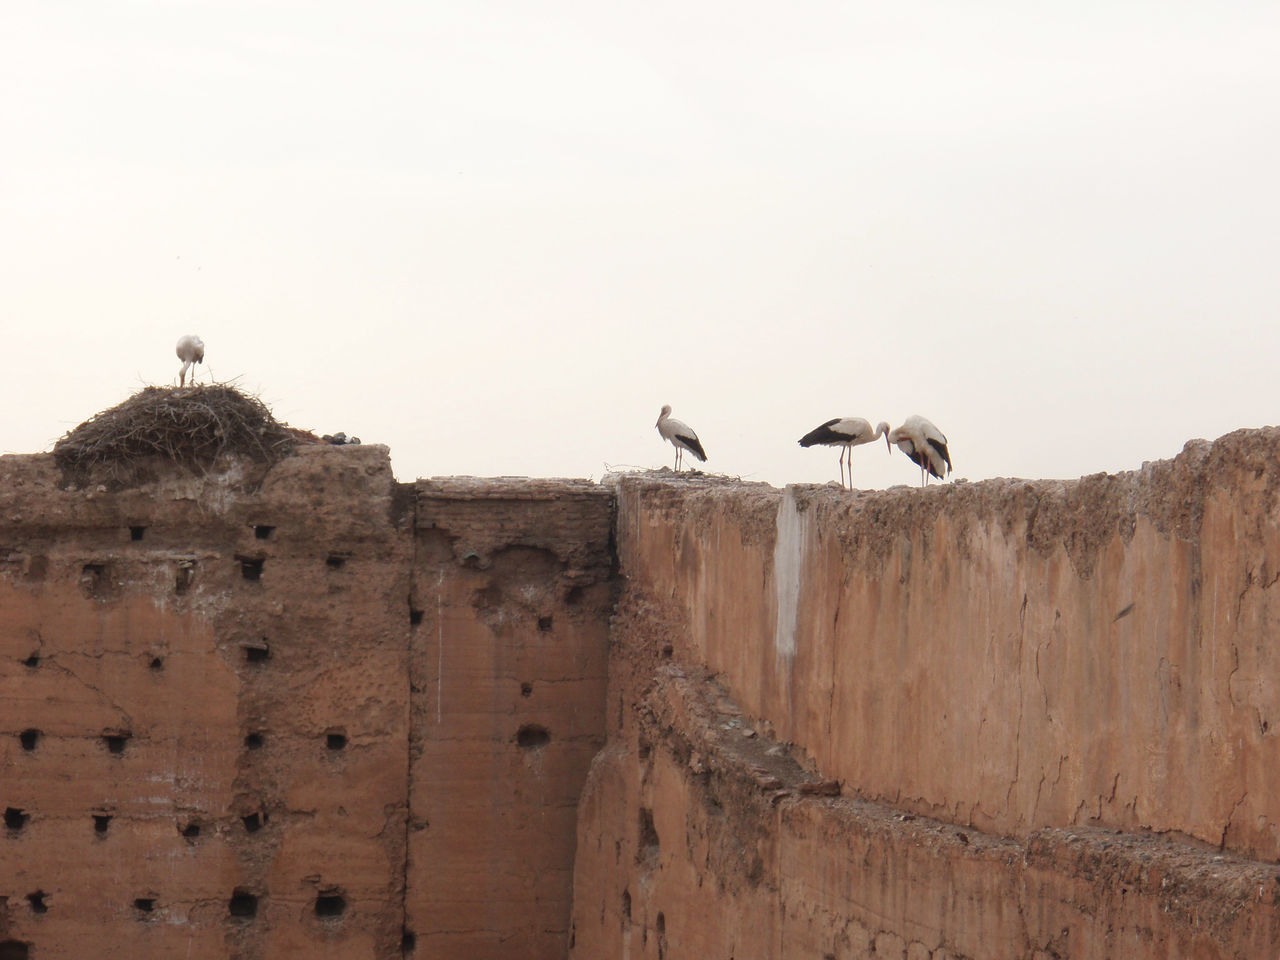 Birds Perched On Wall Against Clear Sky